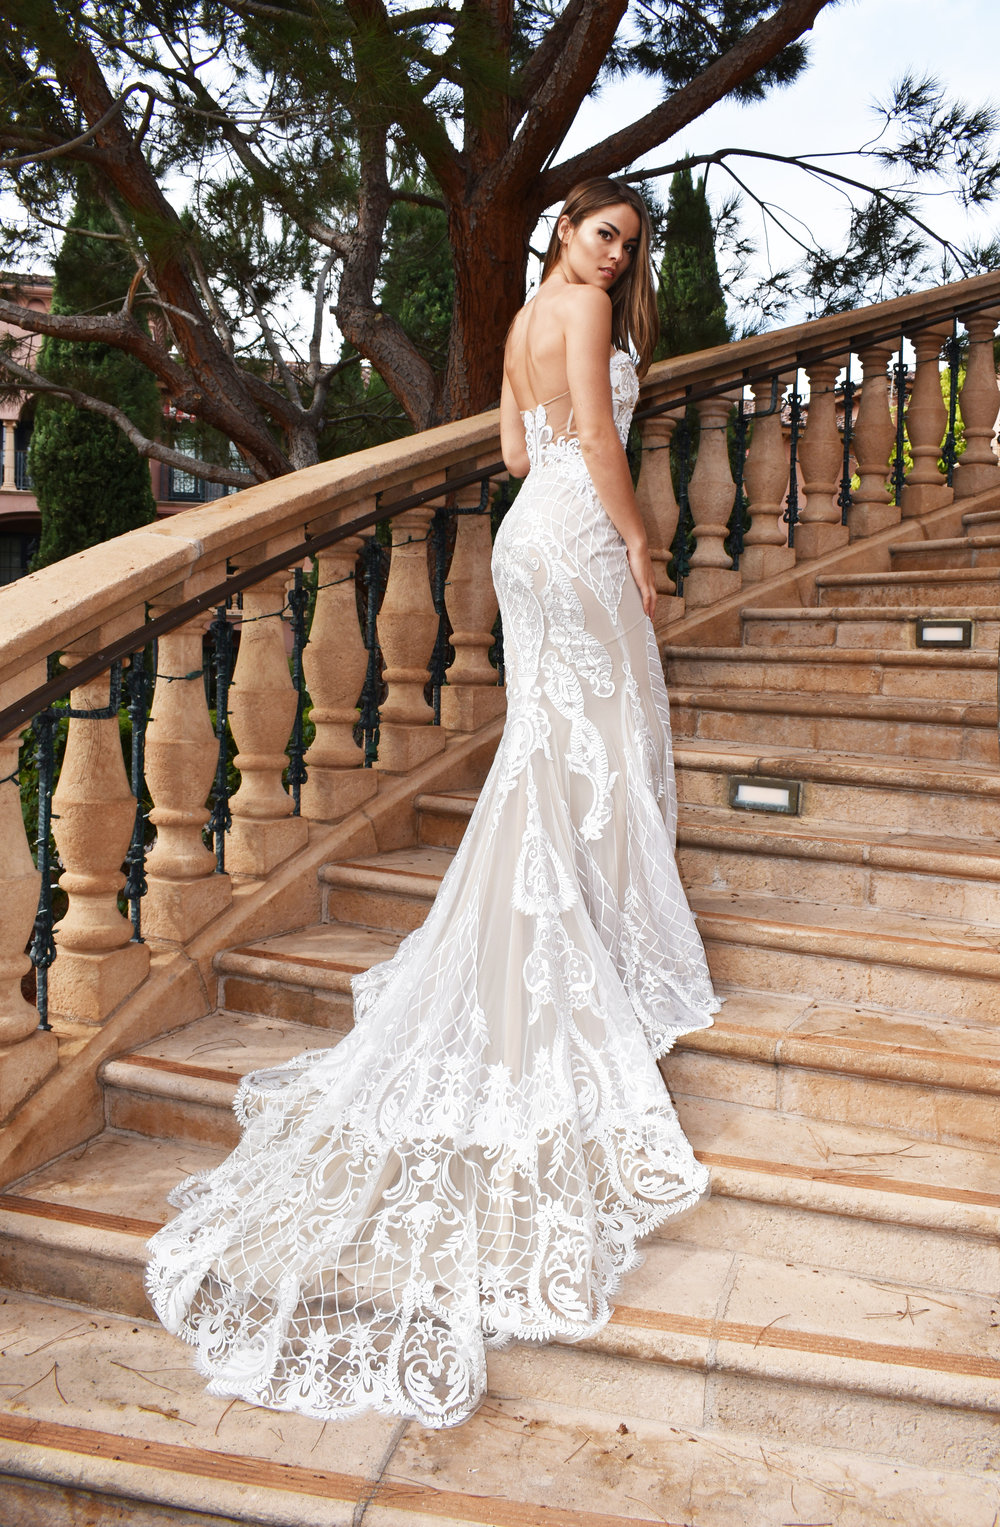 Weddingdress_backStairs.jpg